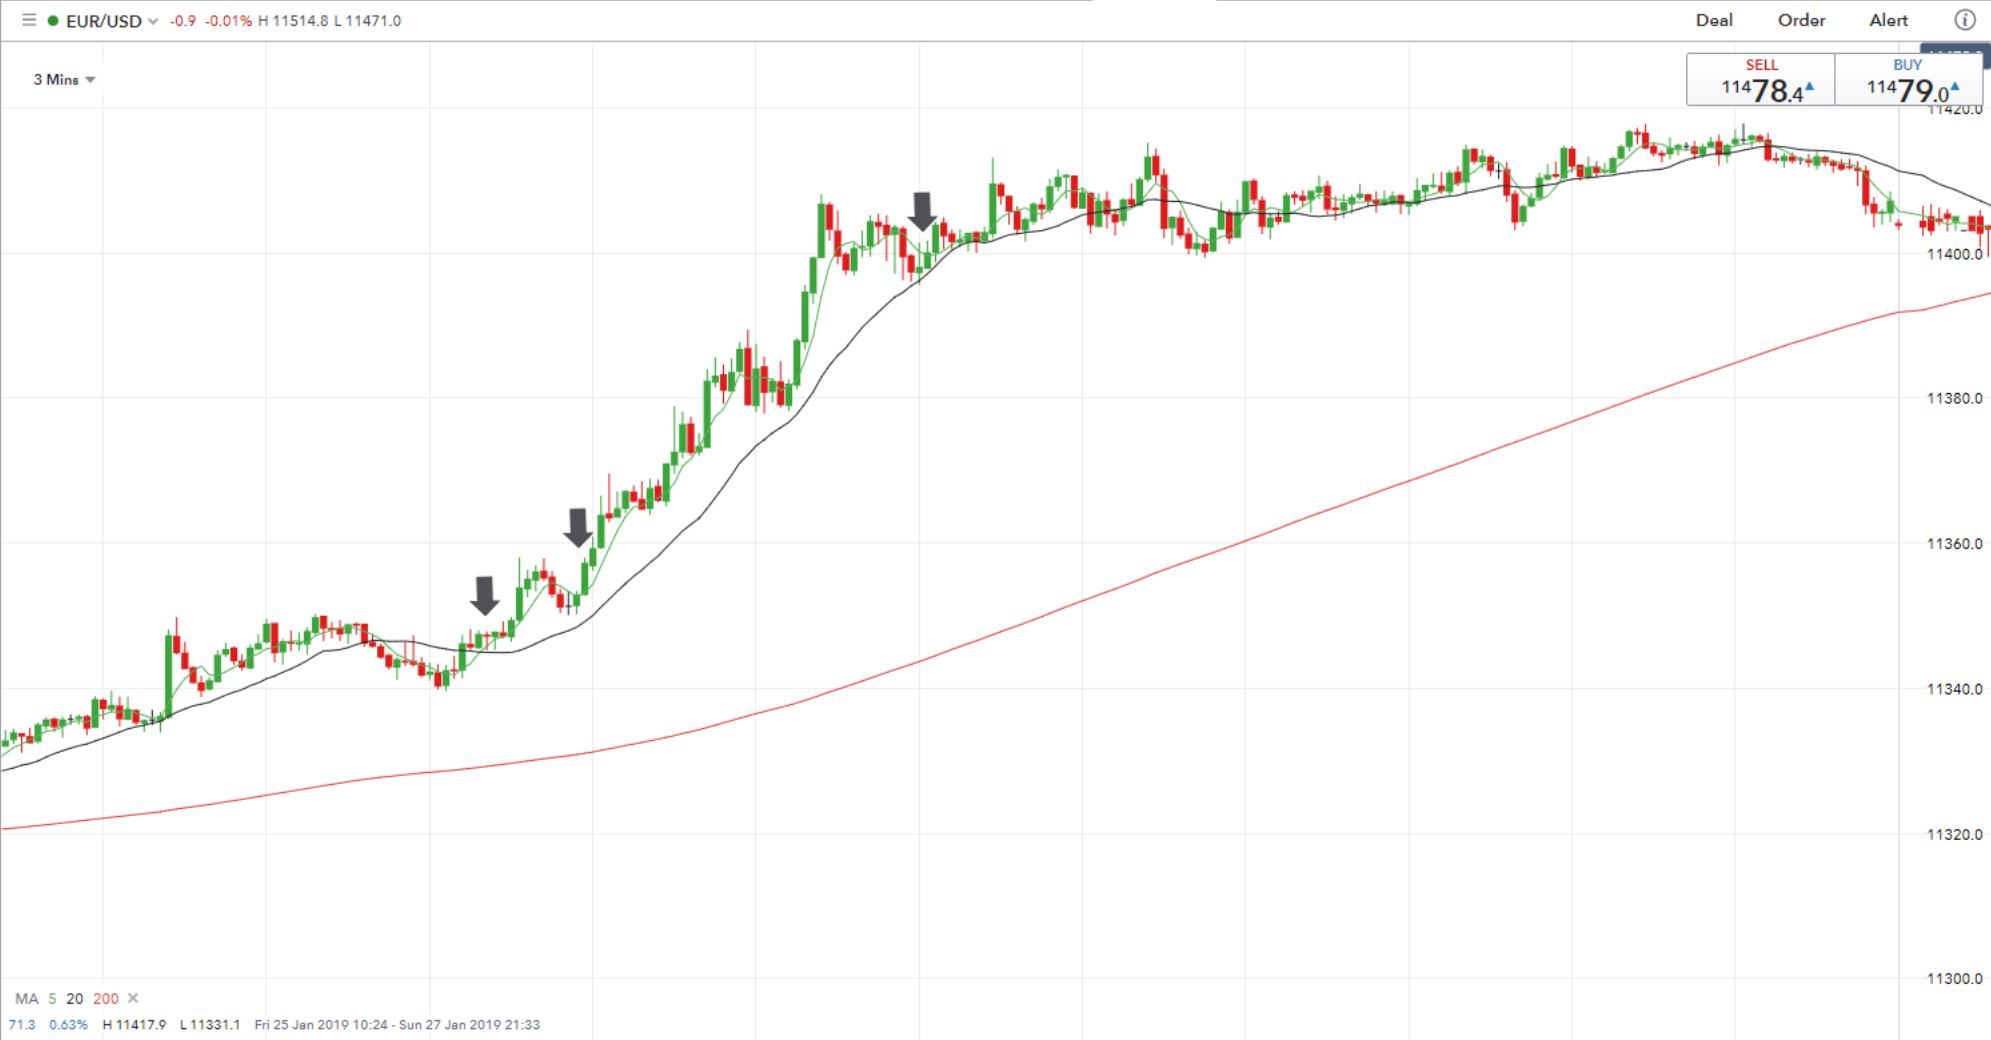 Moving Averages scalping trading strategy